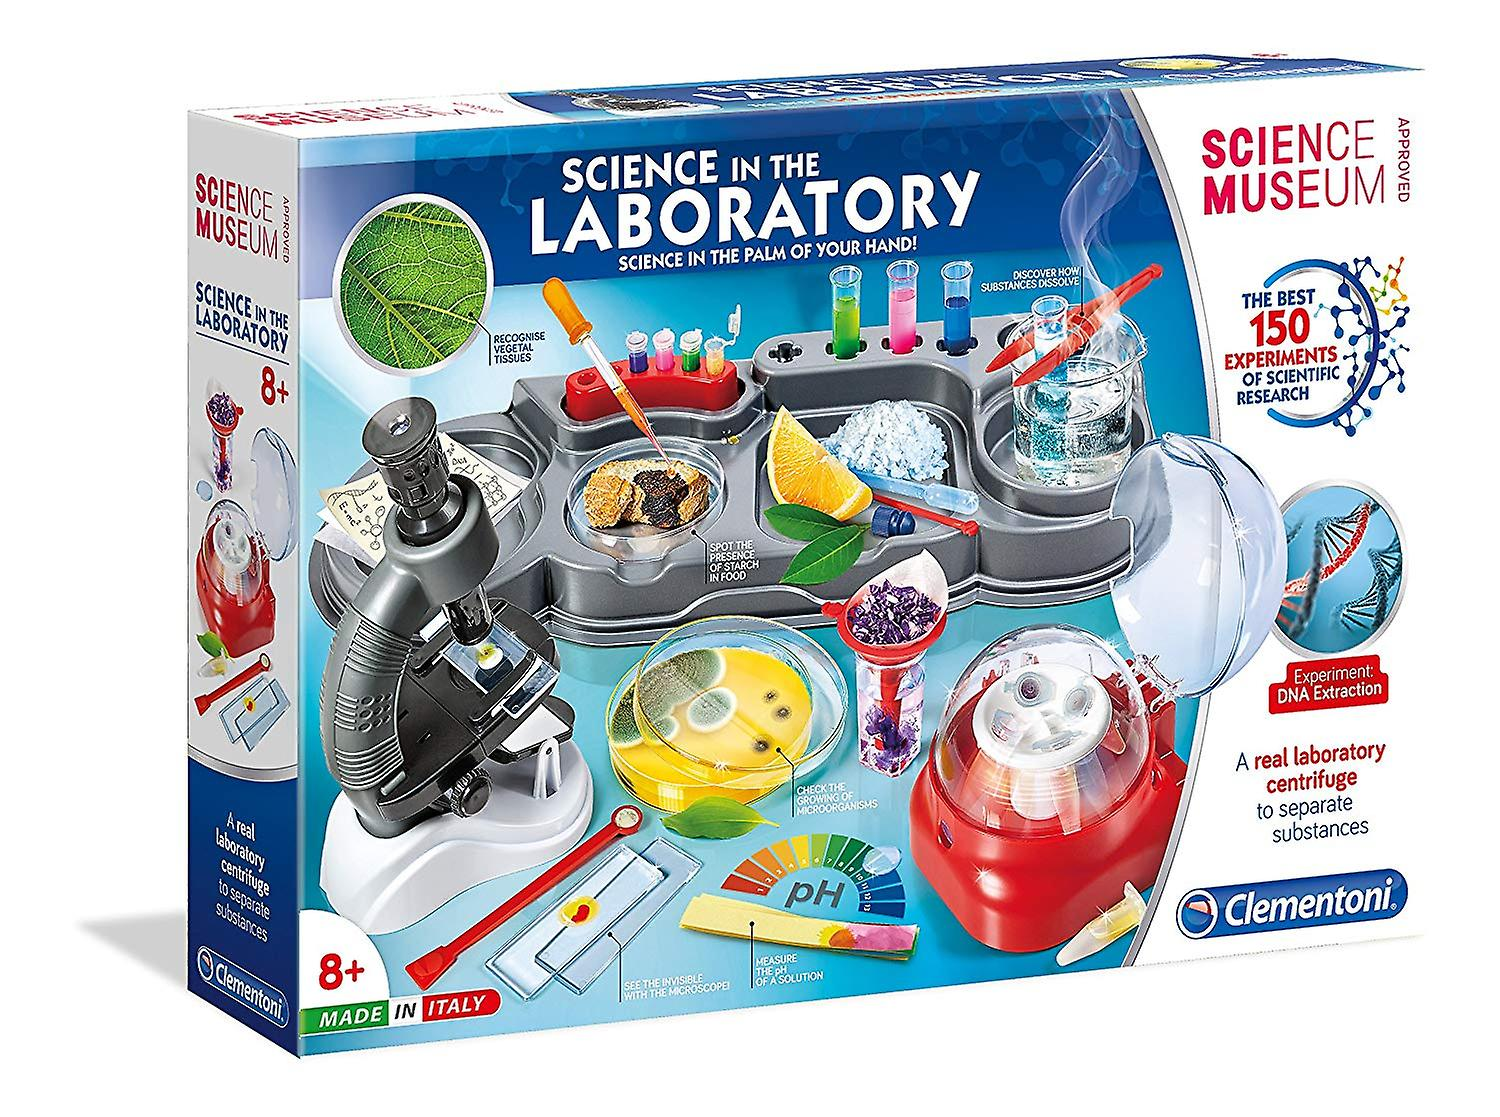 Clementoni Science Museum Science in the Laboratory